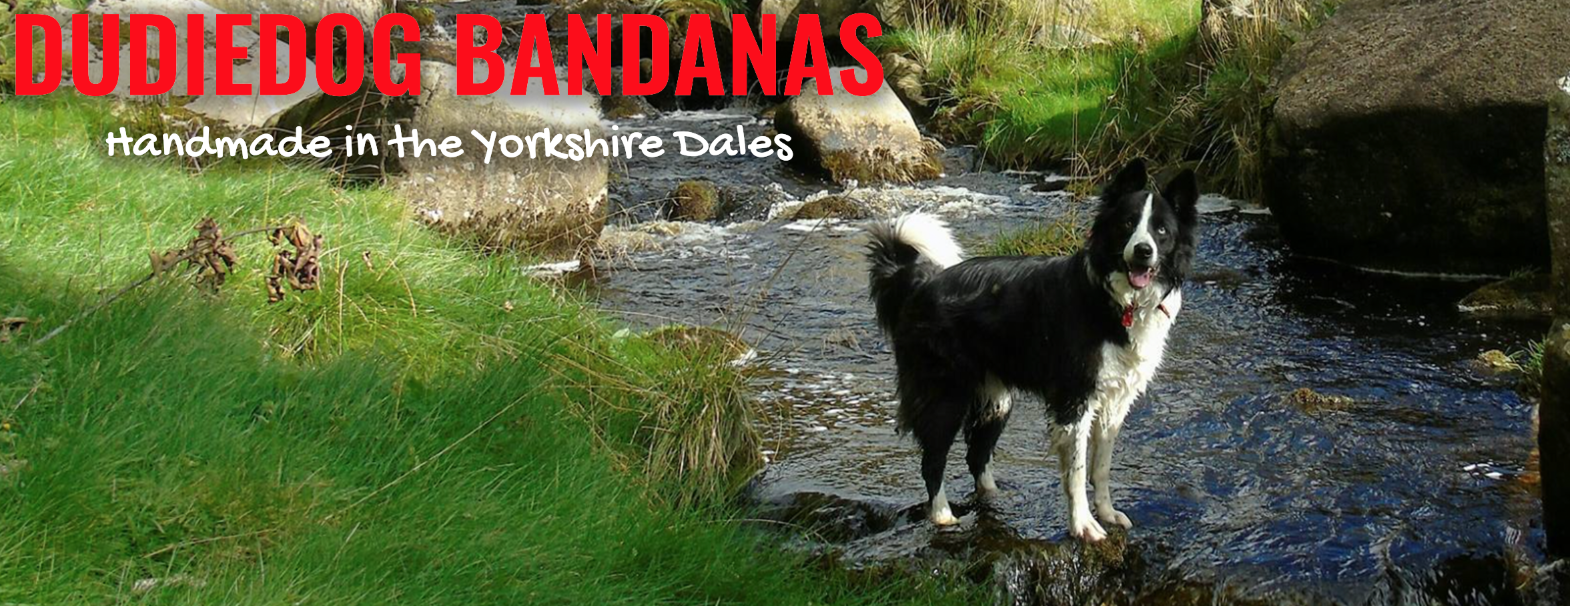 Shop for the best dog bandanas at Dudiedog Bandanas UK. Free UK p&p, Worldwide delivery